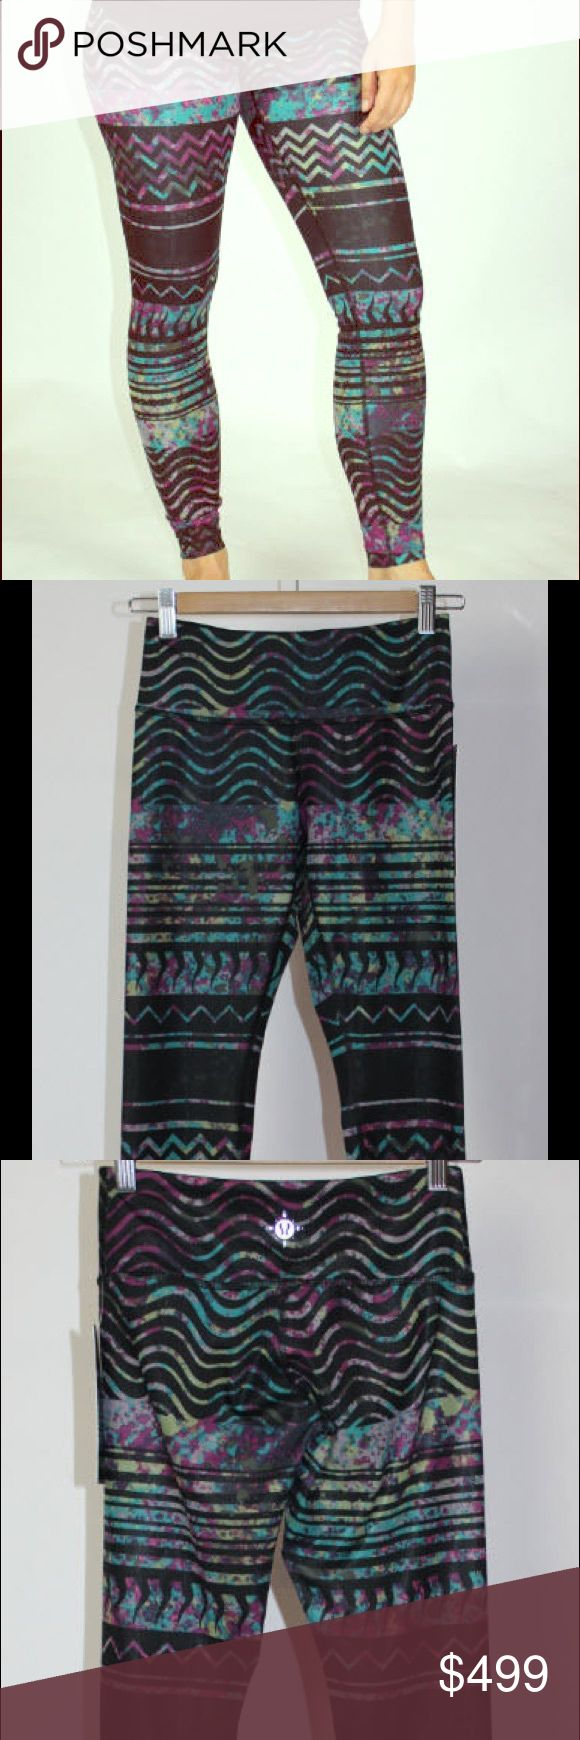 NWT Lululemon Tribal Print Wanderlust Leggings NWT full length not Capri Size 8 2014 Tribal Print being sold on mult places for exposure. Rude comments on price not needed Wanderlust Wunder Under lululemon athletica Pants Leggings